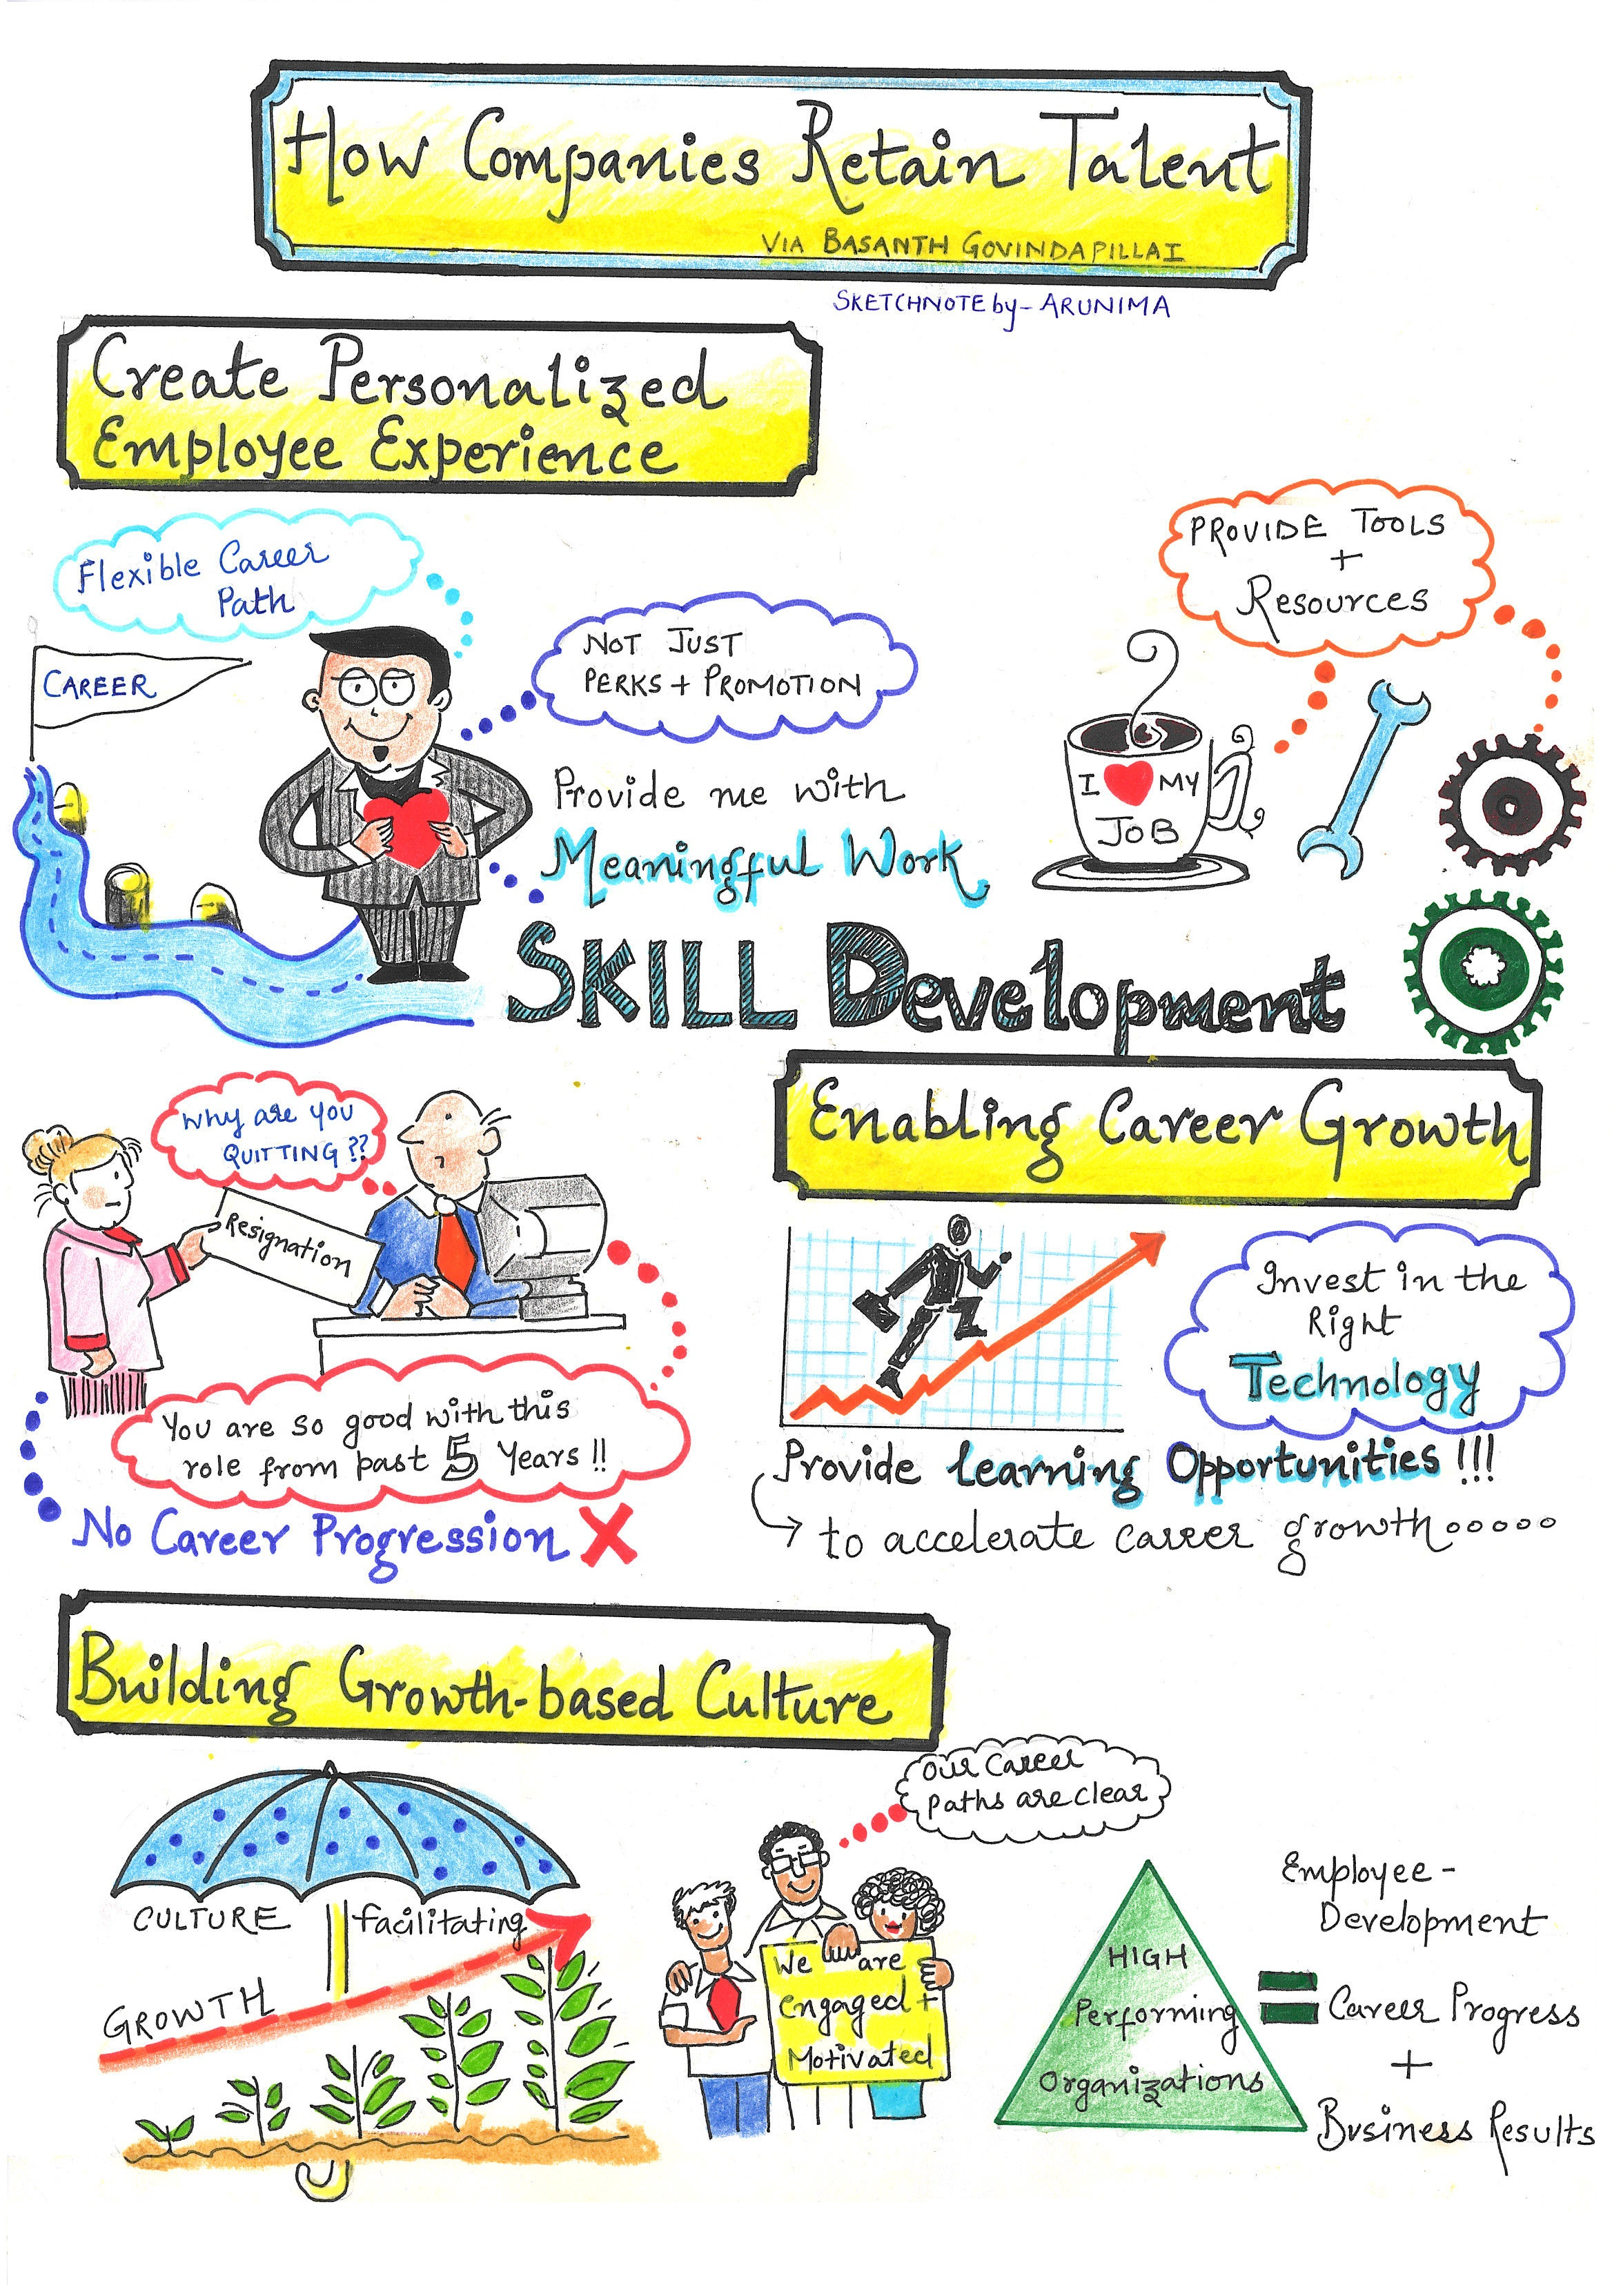 Article: Sketchnote on how to retain your talent — People